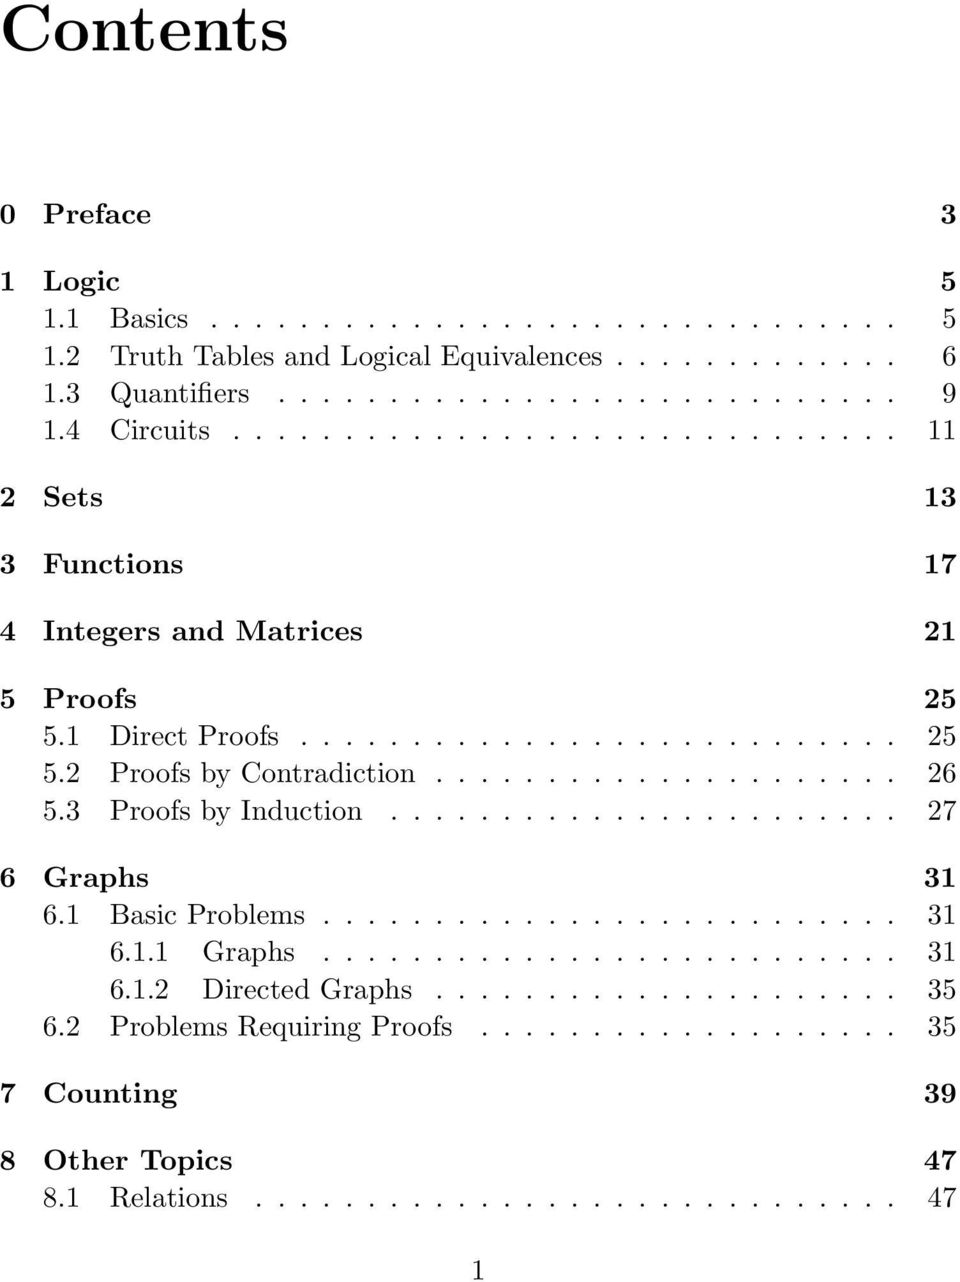 .................... 26 5.3 Proofs by Induction....................... 27 6 Graphs 31 6.1 Basic Problems.......................... 31 6.1.1 Graphs.......................... 31 6.1.2 Directed Graphs.